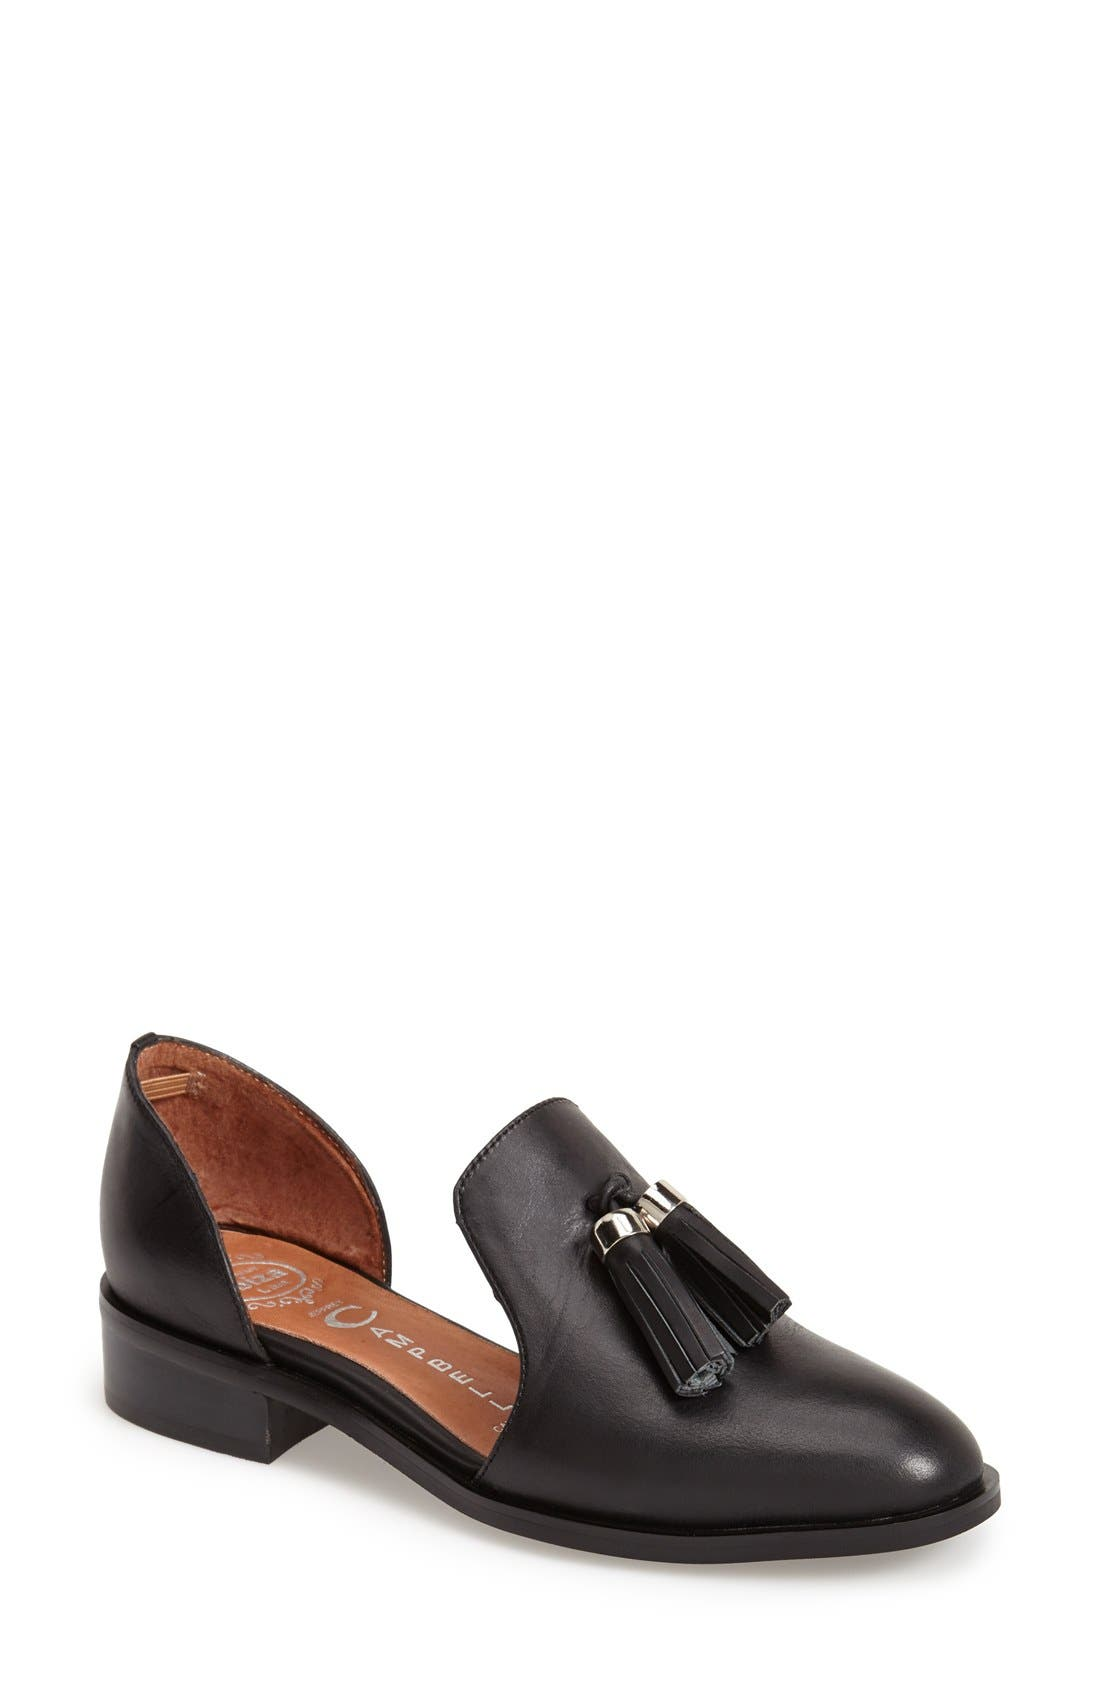 JEFFREY CAMPBELL, 'Open Case' Tasseled Leather Flat, Main thumbnail 1, color, 001